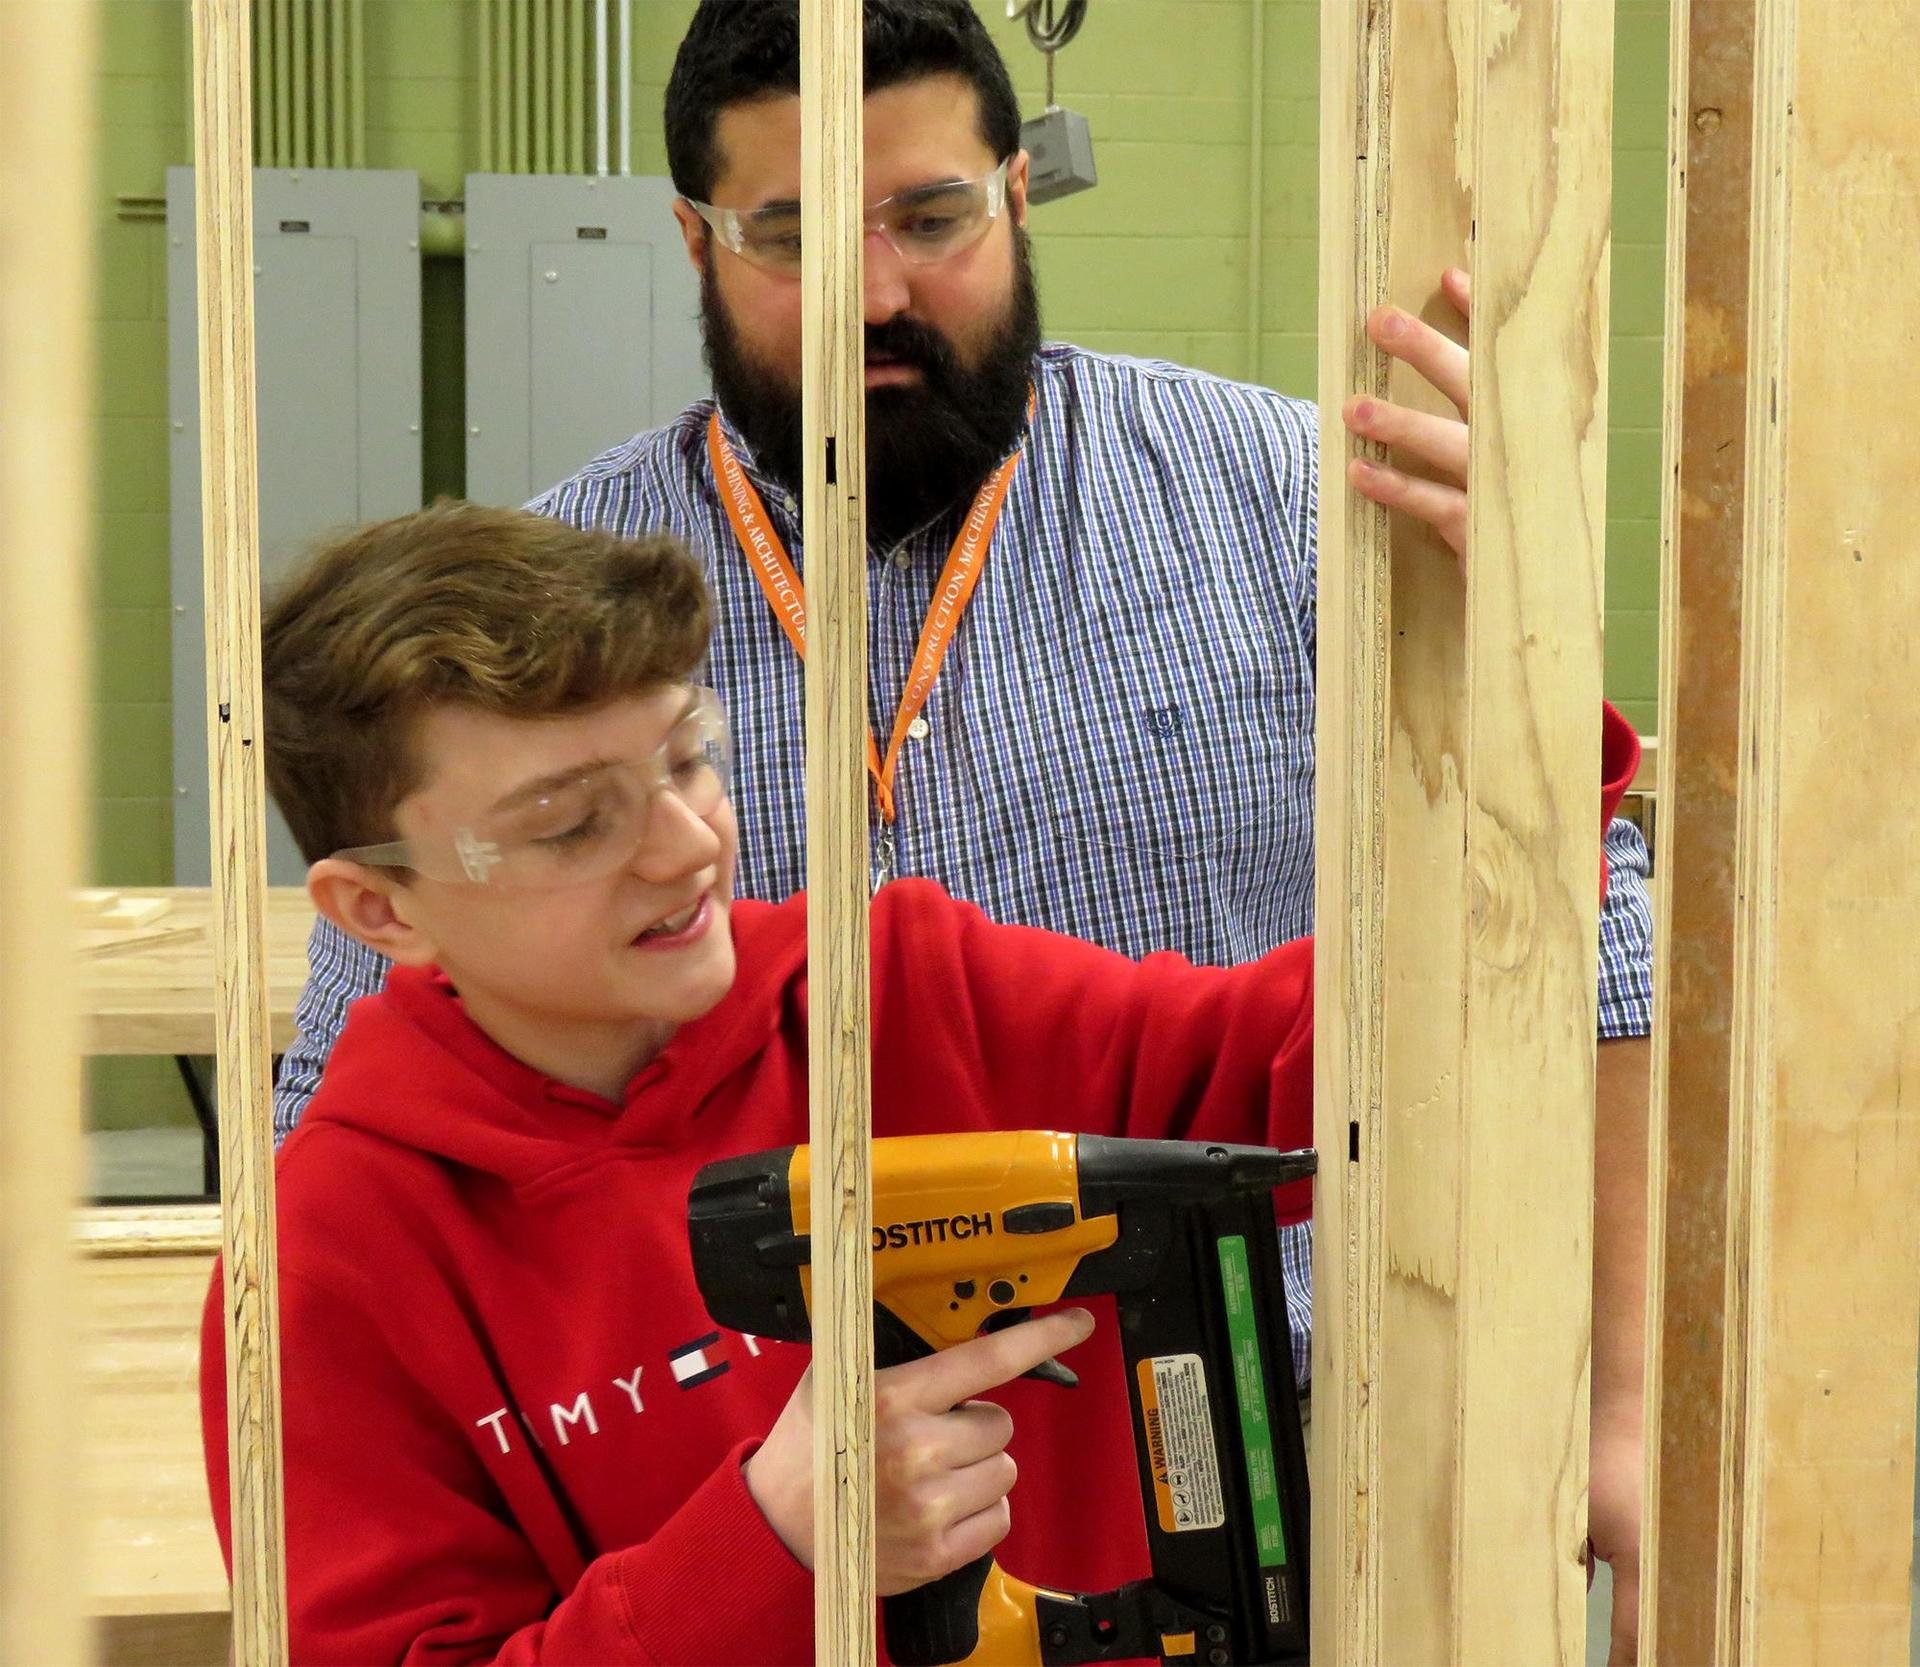 A student uses a nail gun under the direction of a teacher